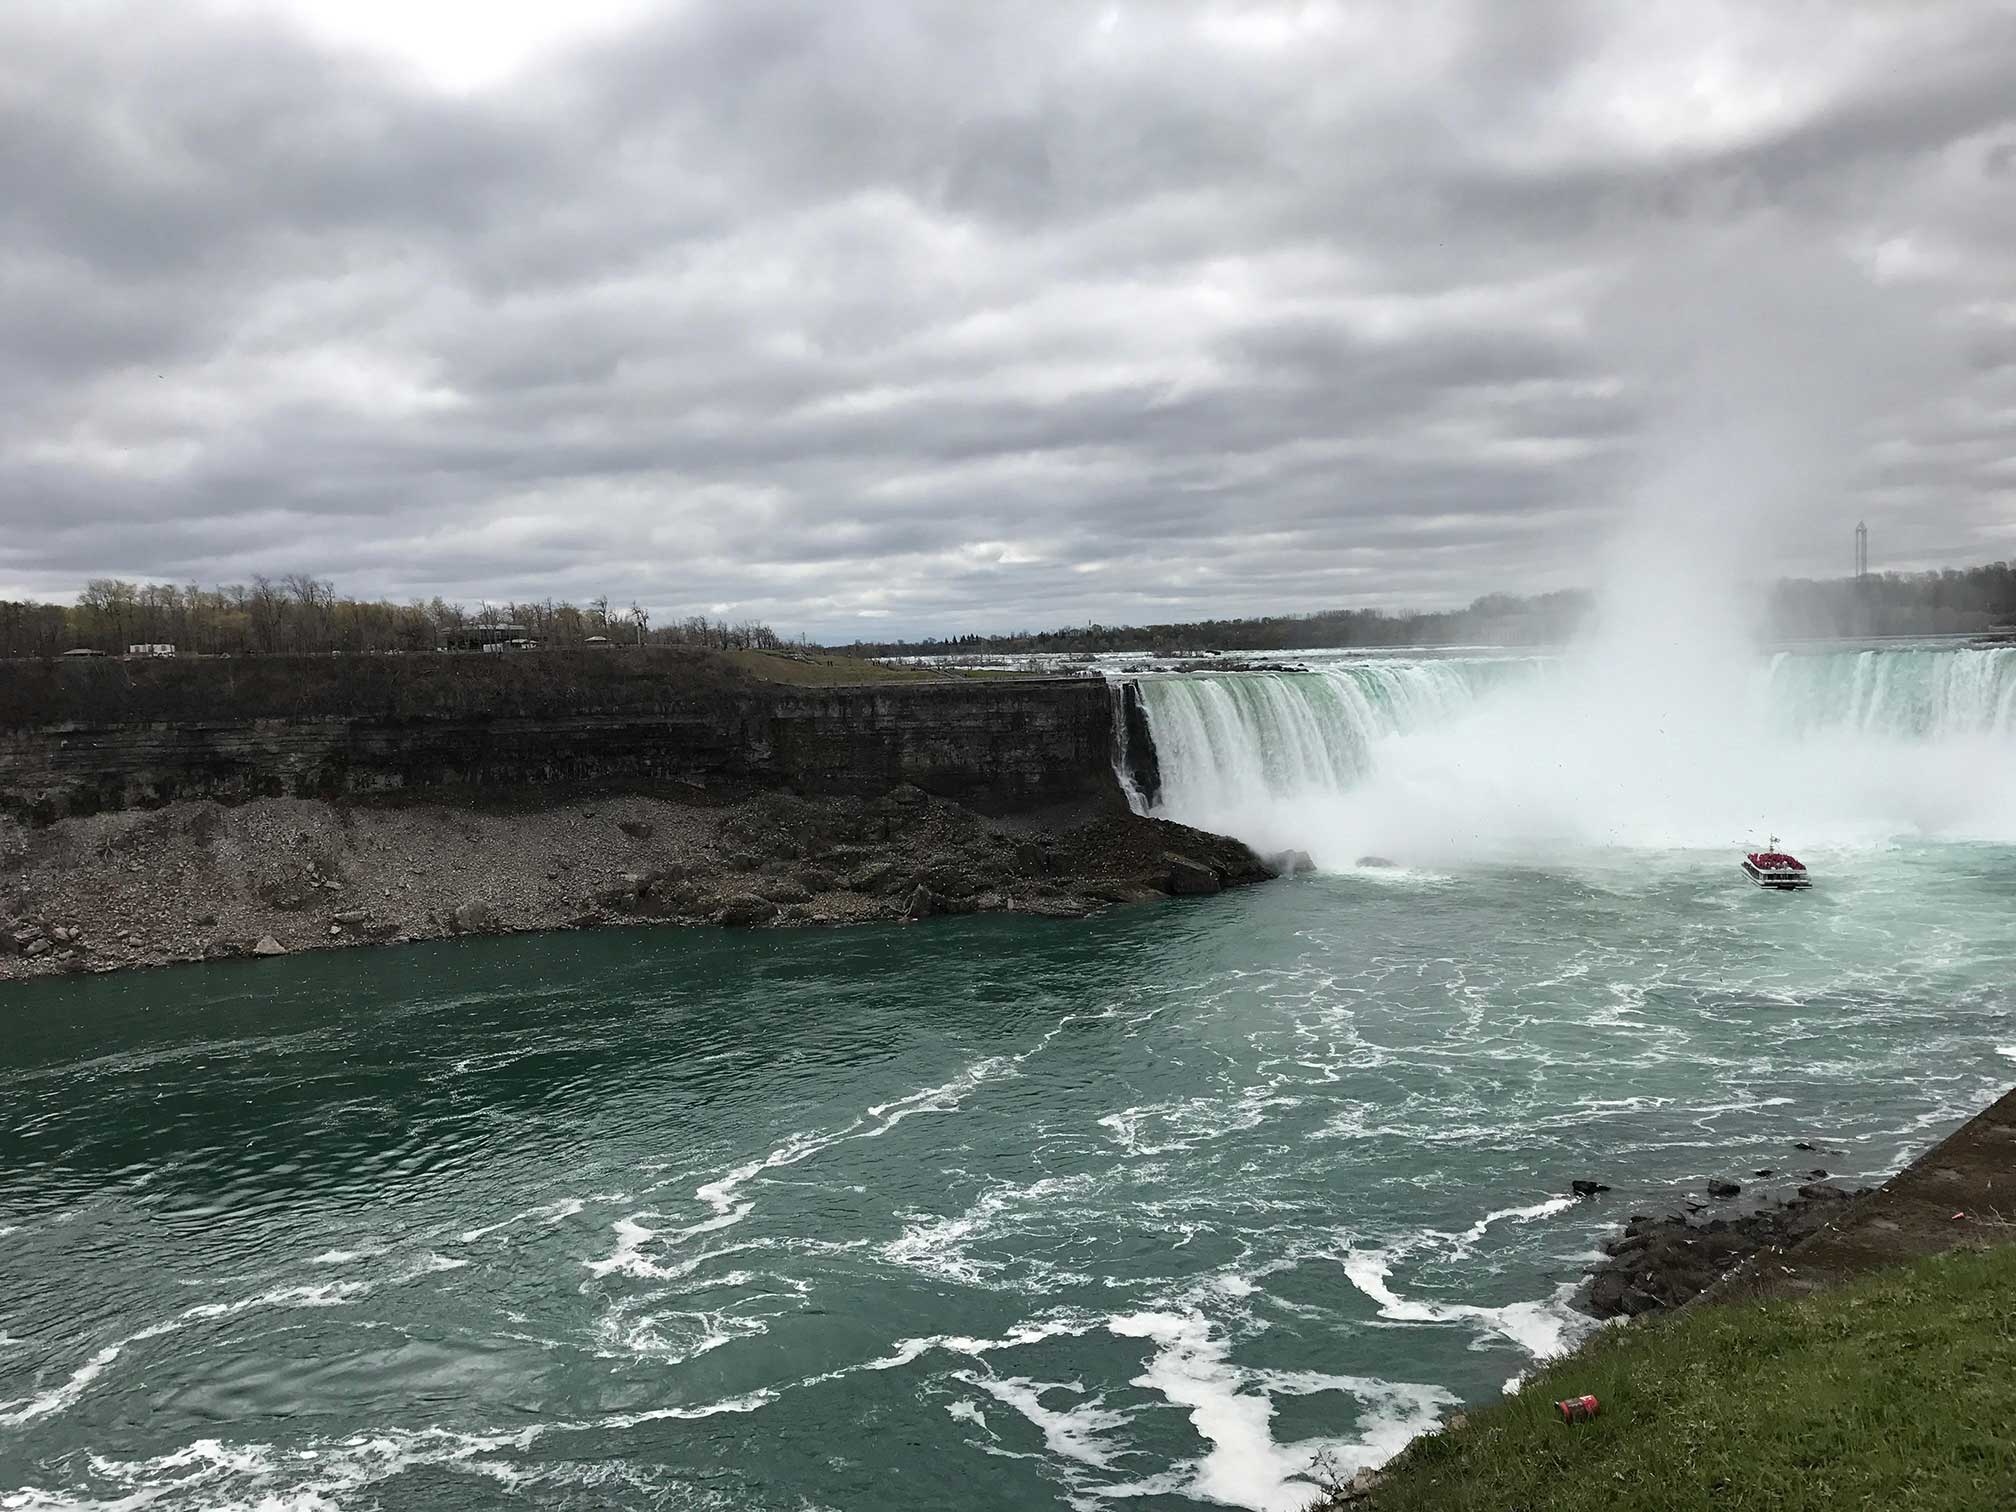 A view of Niagara Falls, ON, Canada